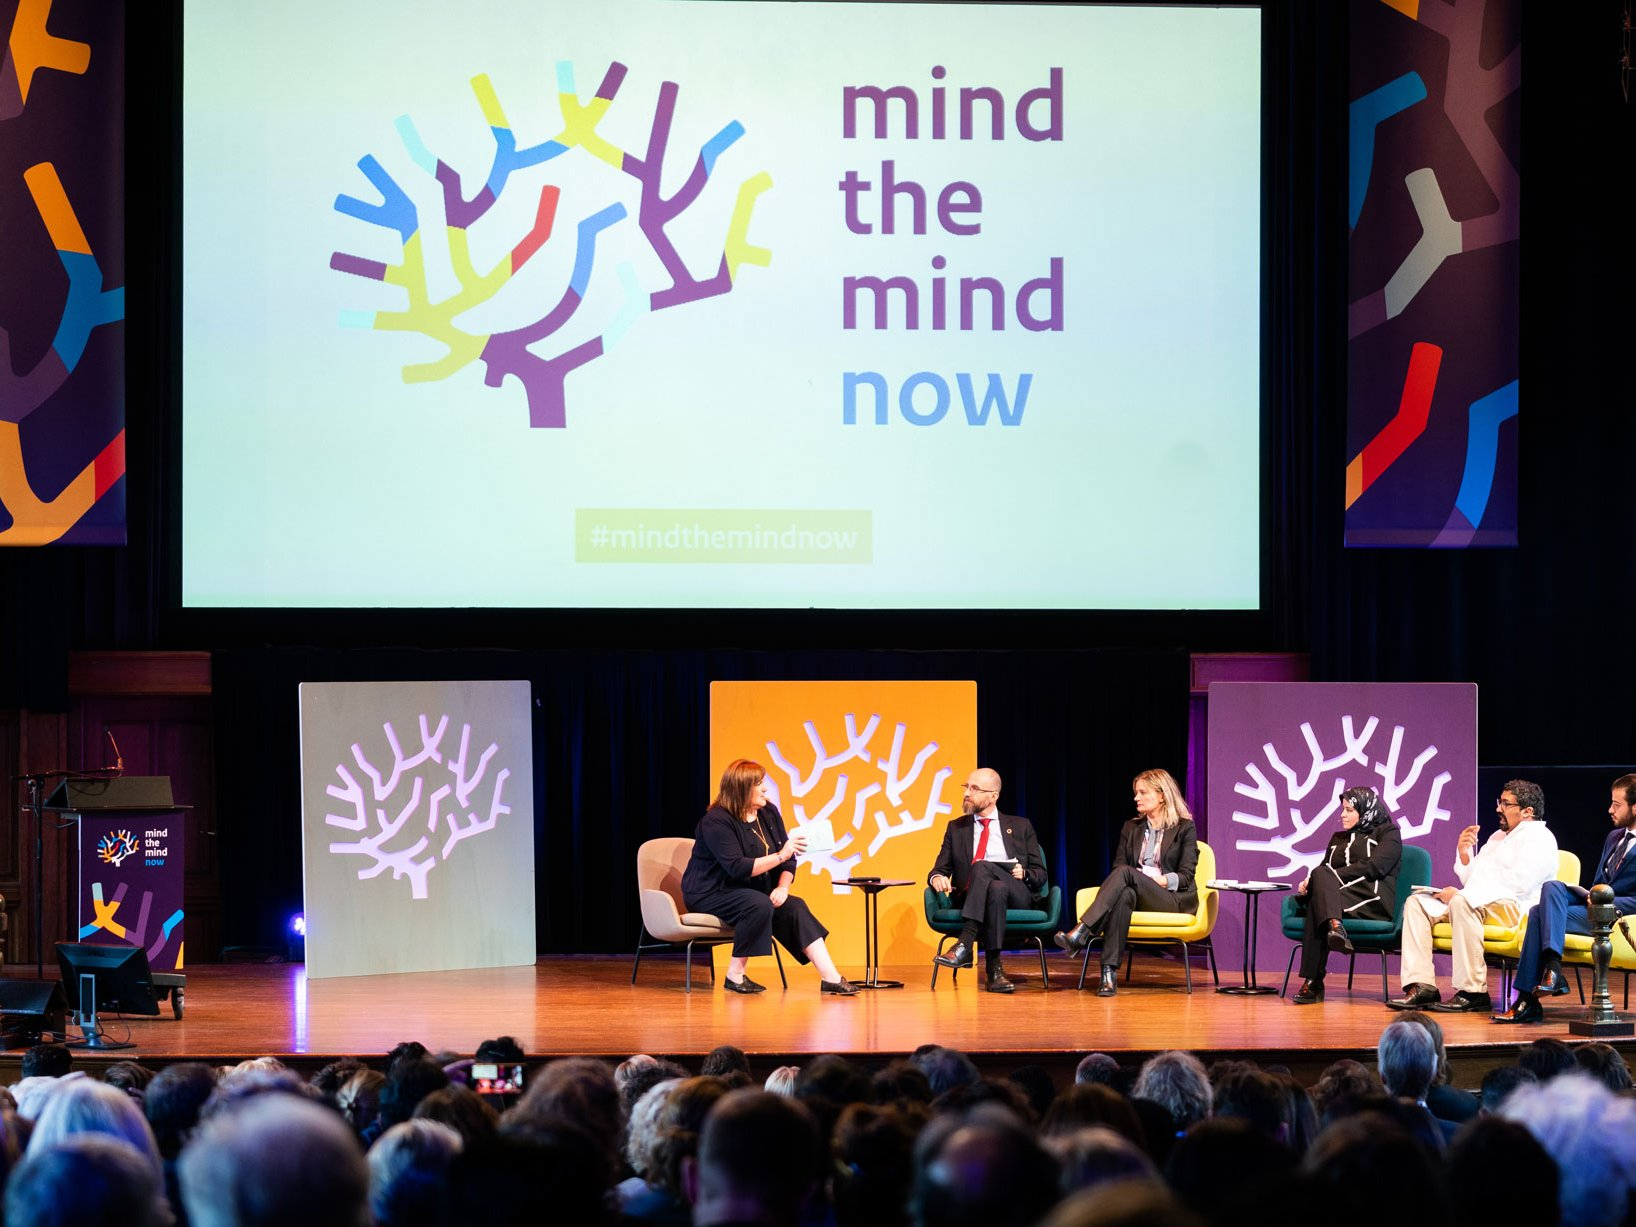 Mind the mind now conferentie